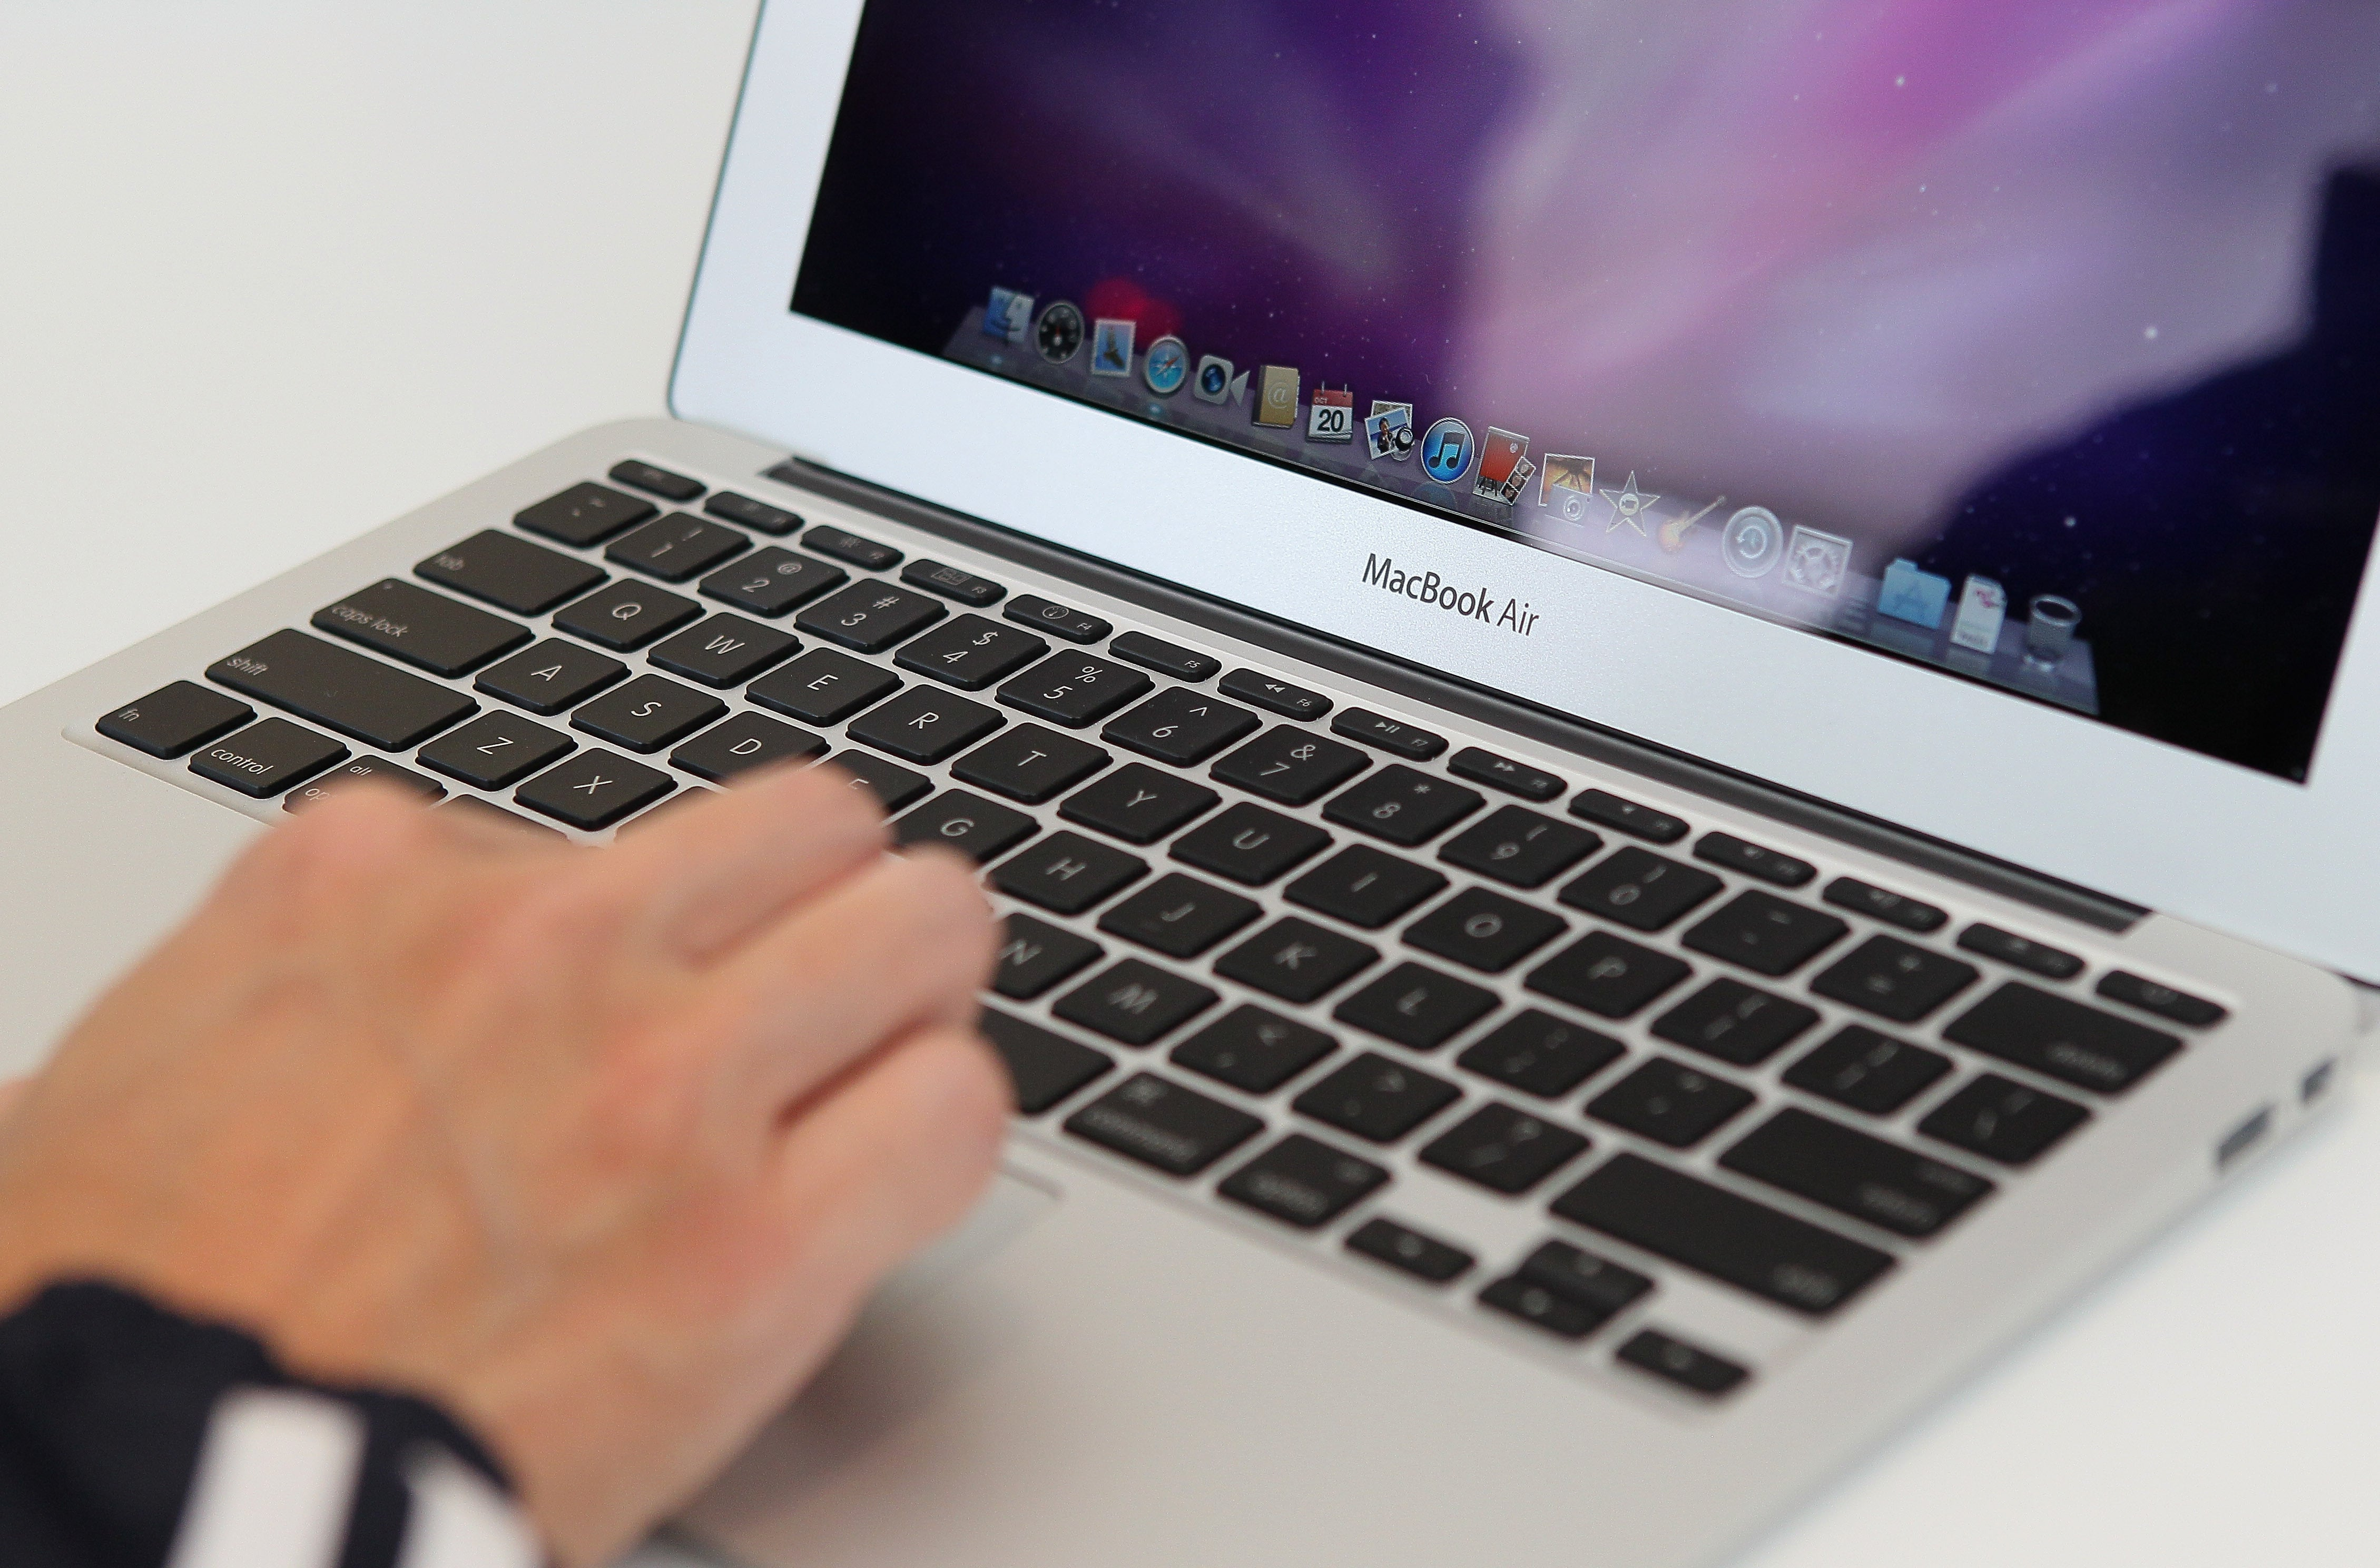 macworld news tips and reviews from the apple experts